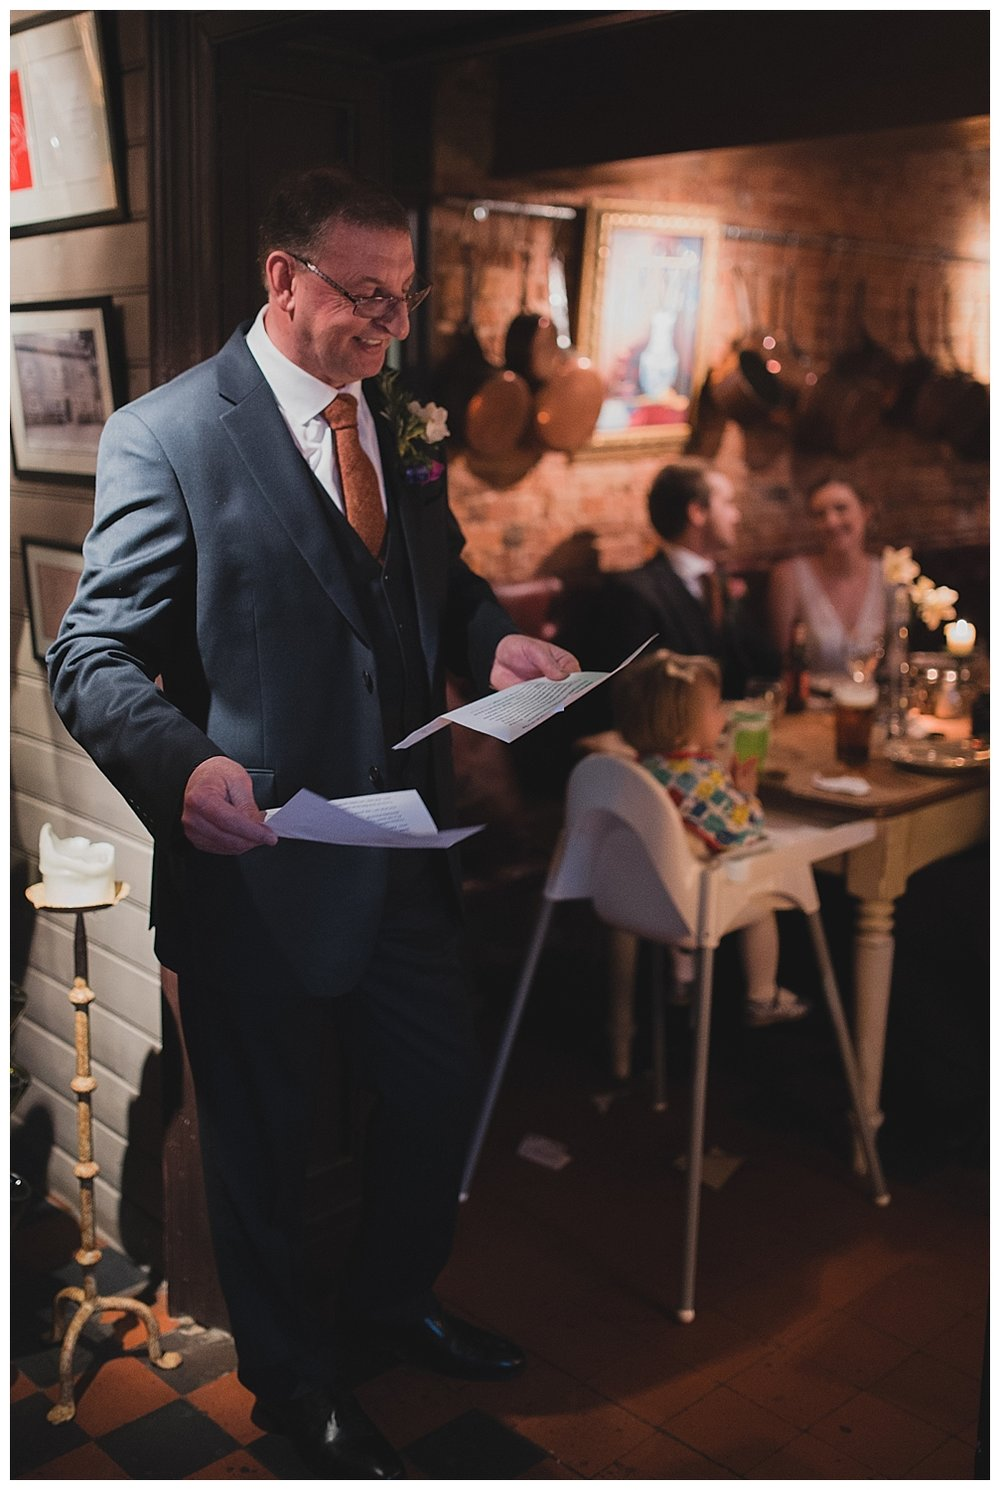 Speeches at a Cheshire Inn wedding.